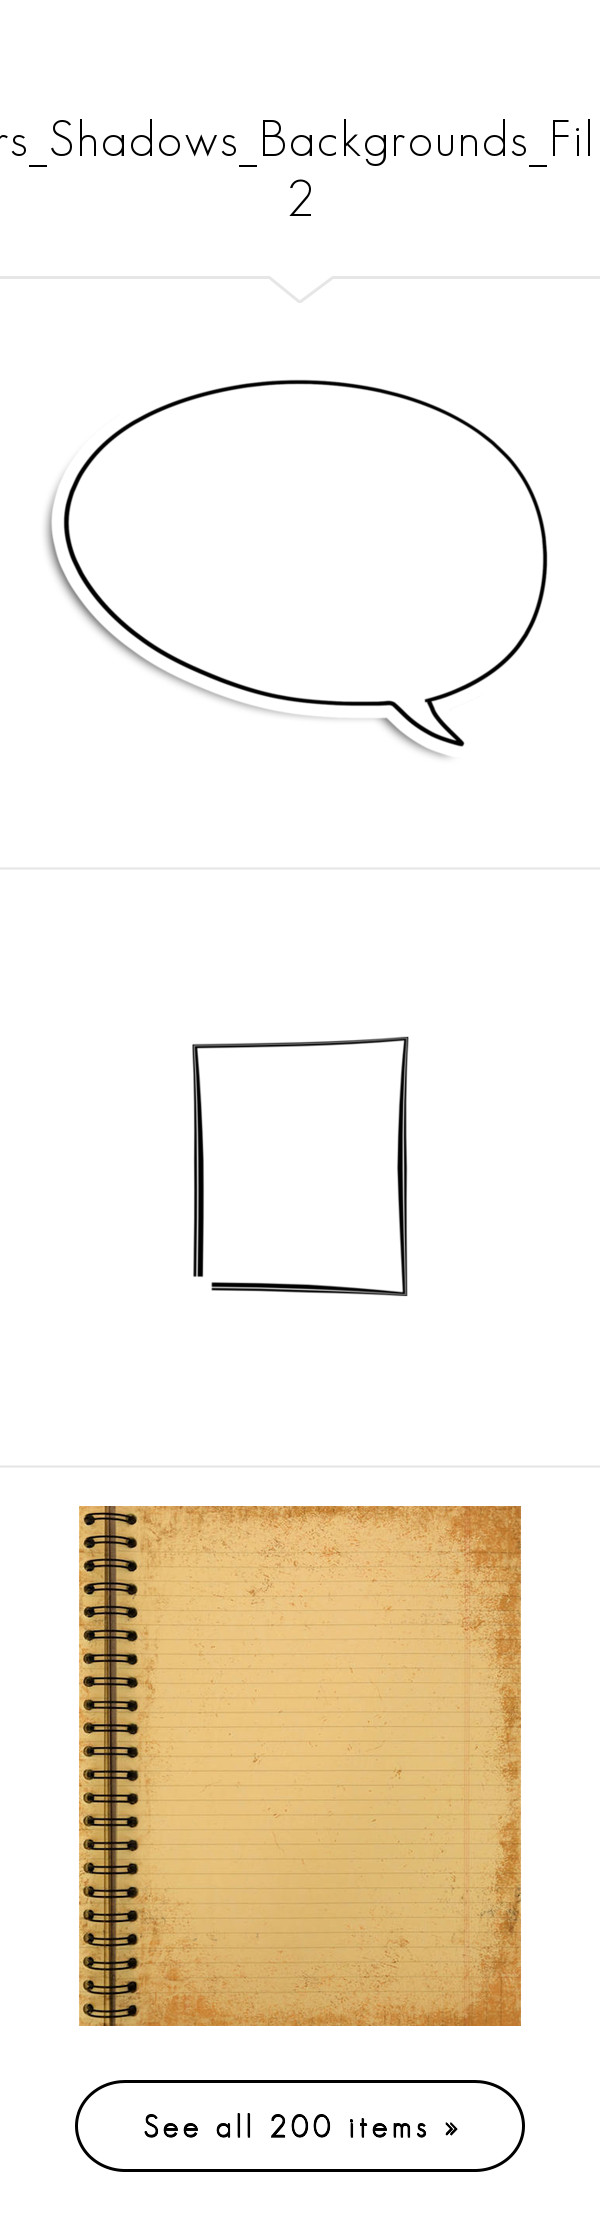 """""""Templates_Frames_Borders_Shadows_Backgrounds_Fillers_Vector_Elements-etc 2"""" by liddy-white ❤ liked on Polyvore featuring frames, backgrounds, filler, borders, picture frame, accessories, eyewear, phrase, quotes and saying"""